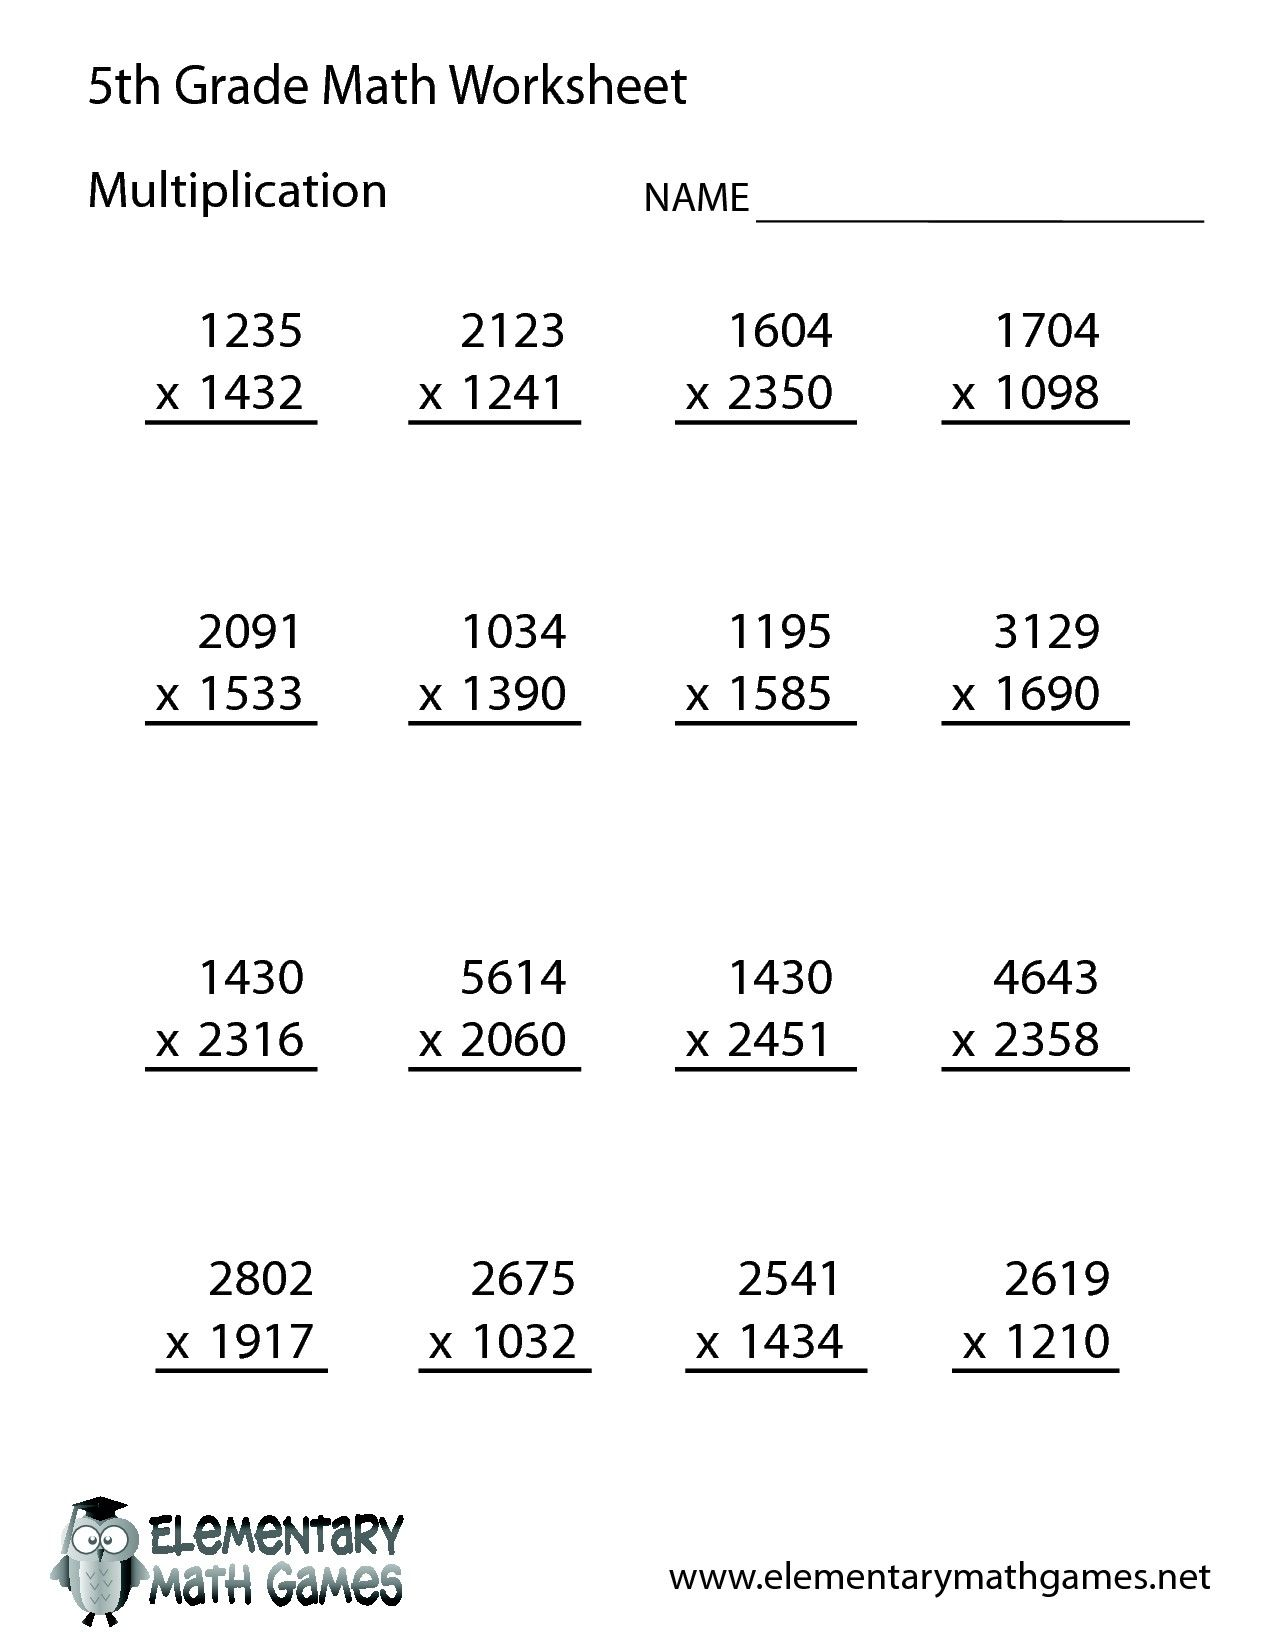 5th Grade Math Worksheets Printable Matematicas De Quinto Grado